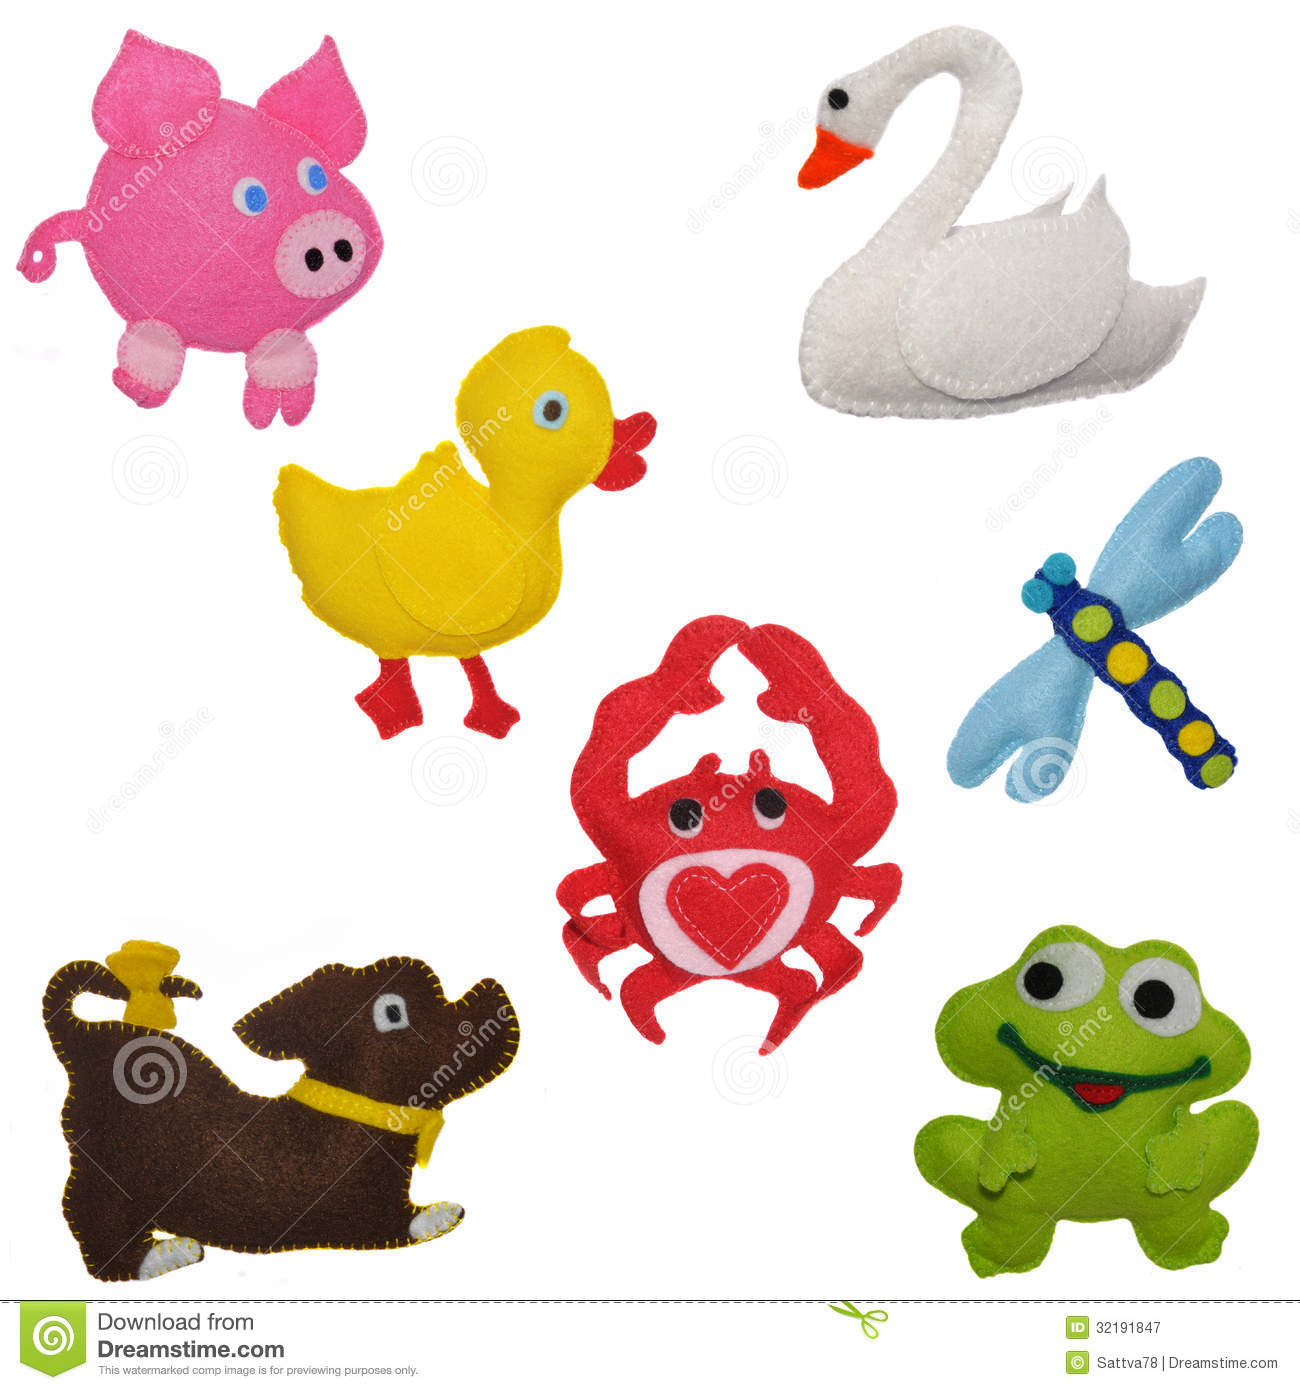 felt toys animals royalty free stock photography image clipart octpus clipart octopus olives